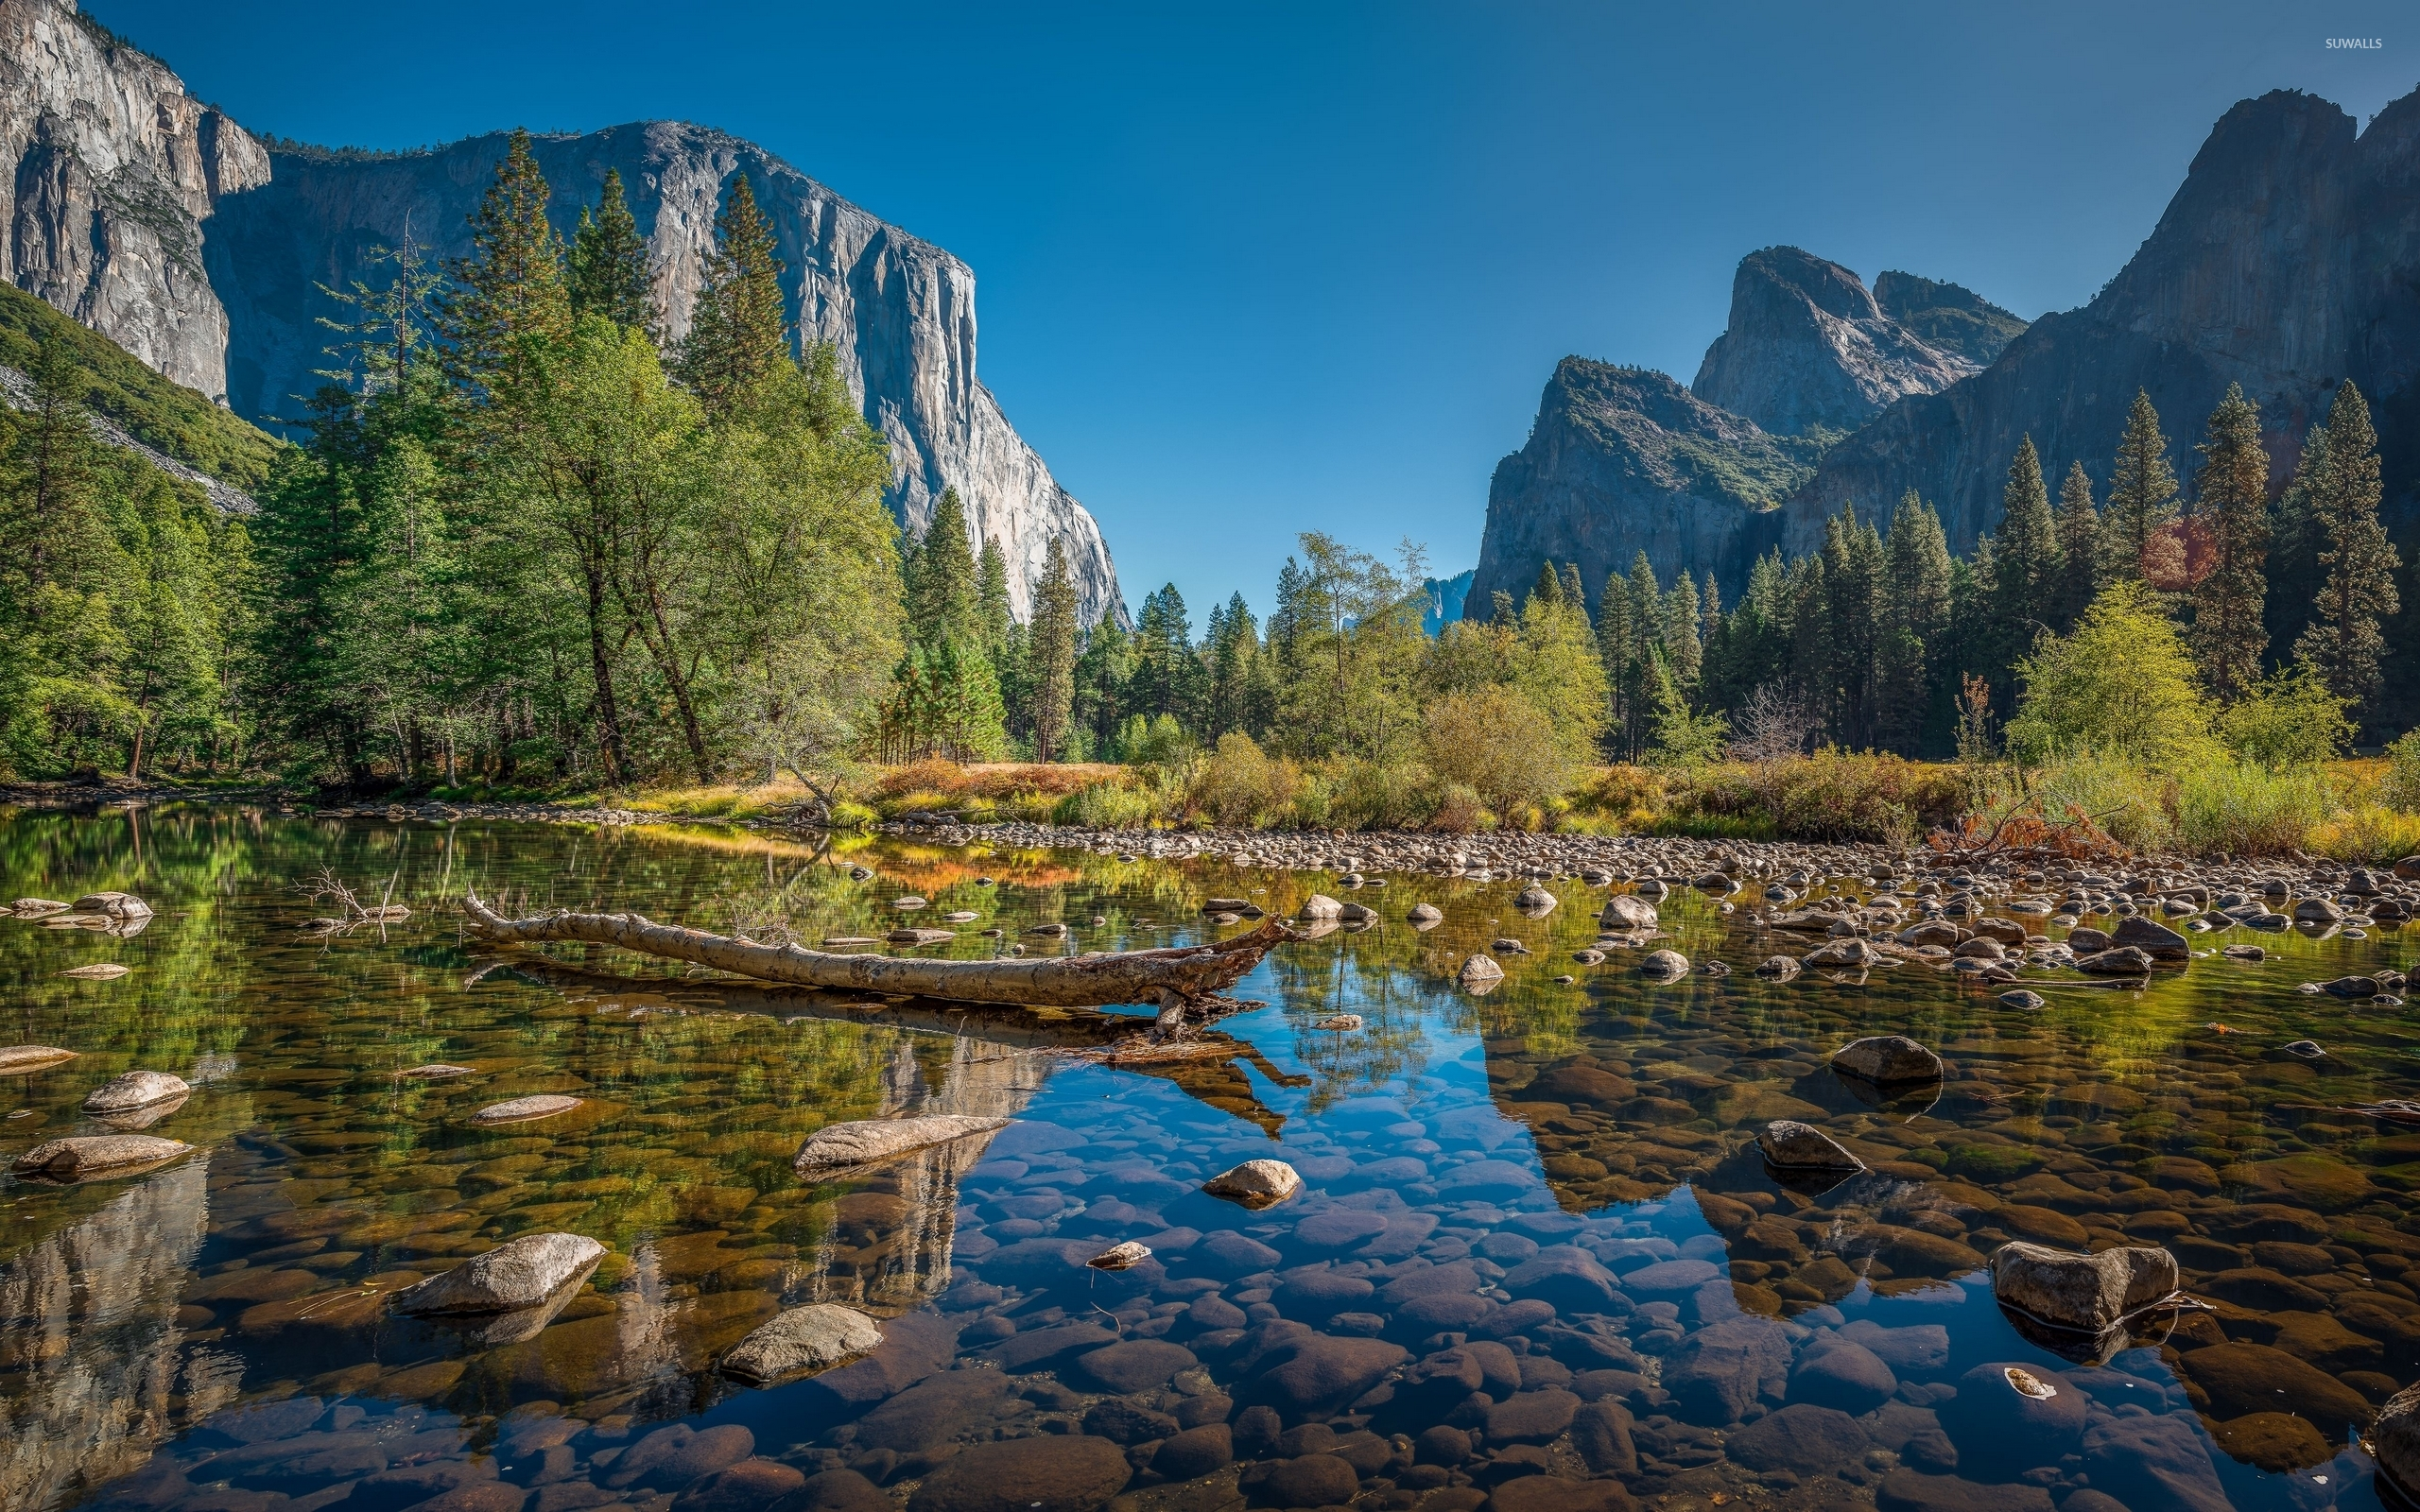 Download yosemite national park wallpaper gallery - Yosemite national park hd wallpaper ...